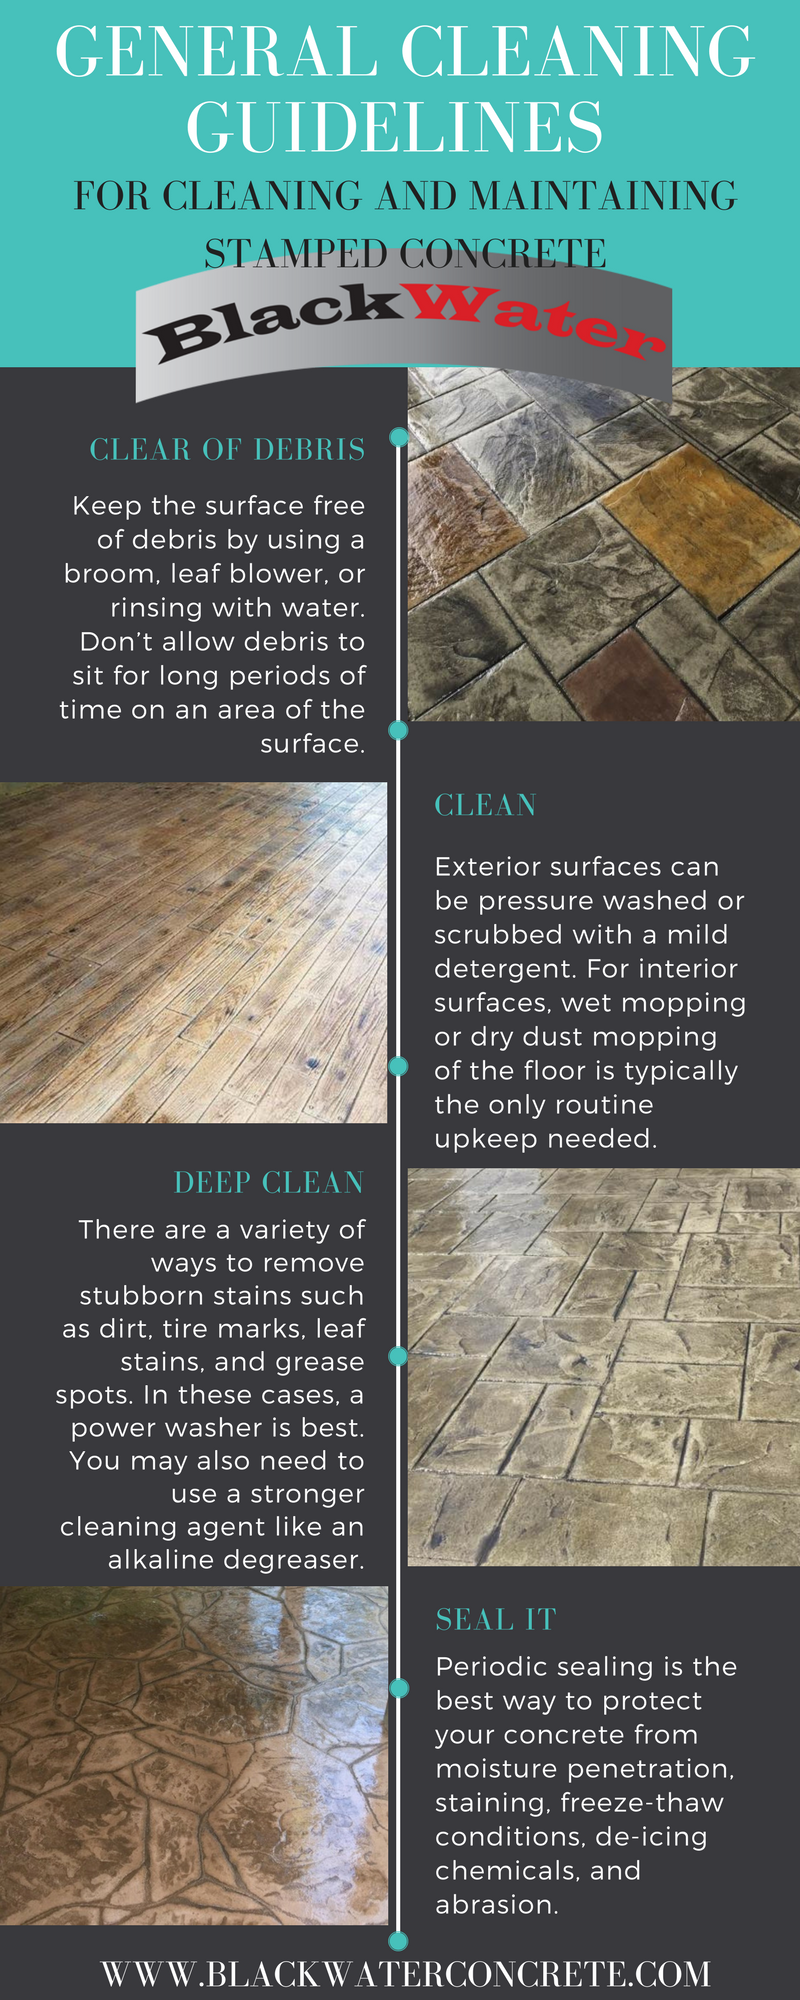 guidelines for cleaning and maintaining stamped concrete